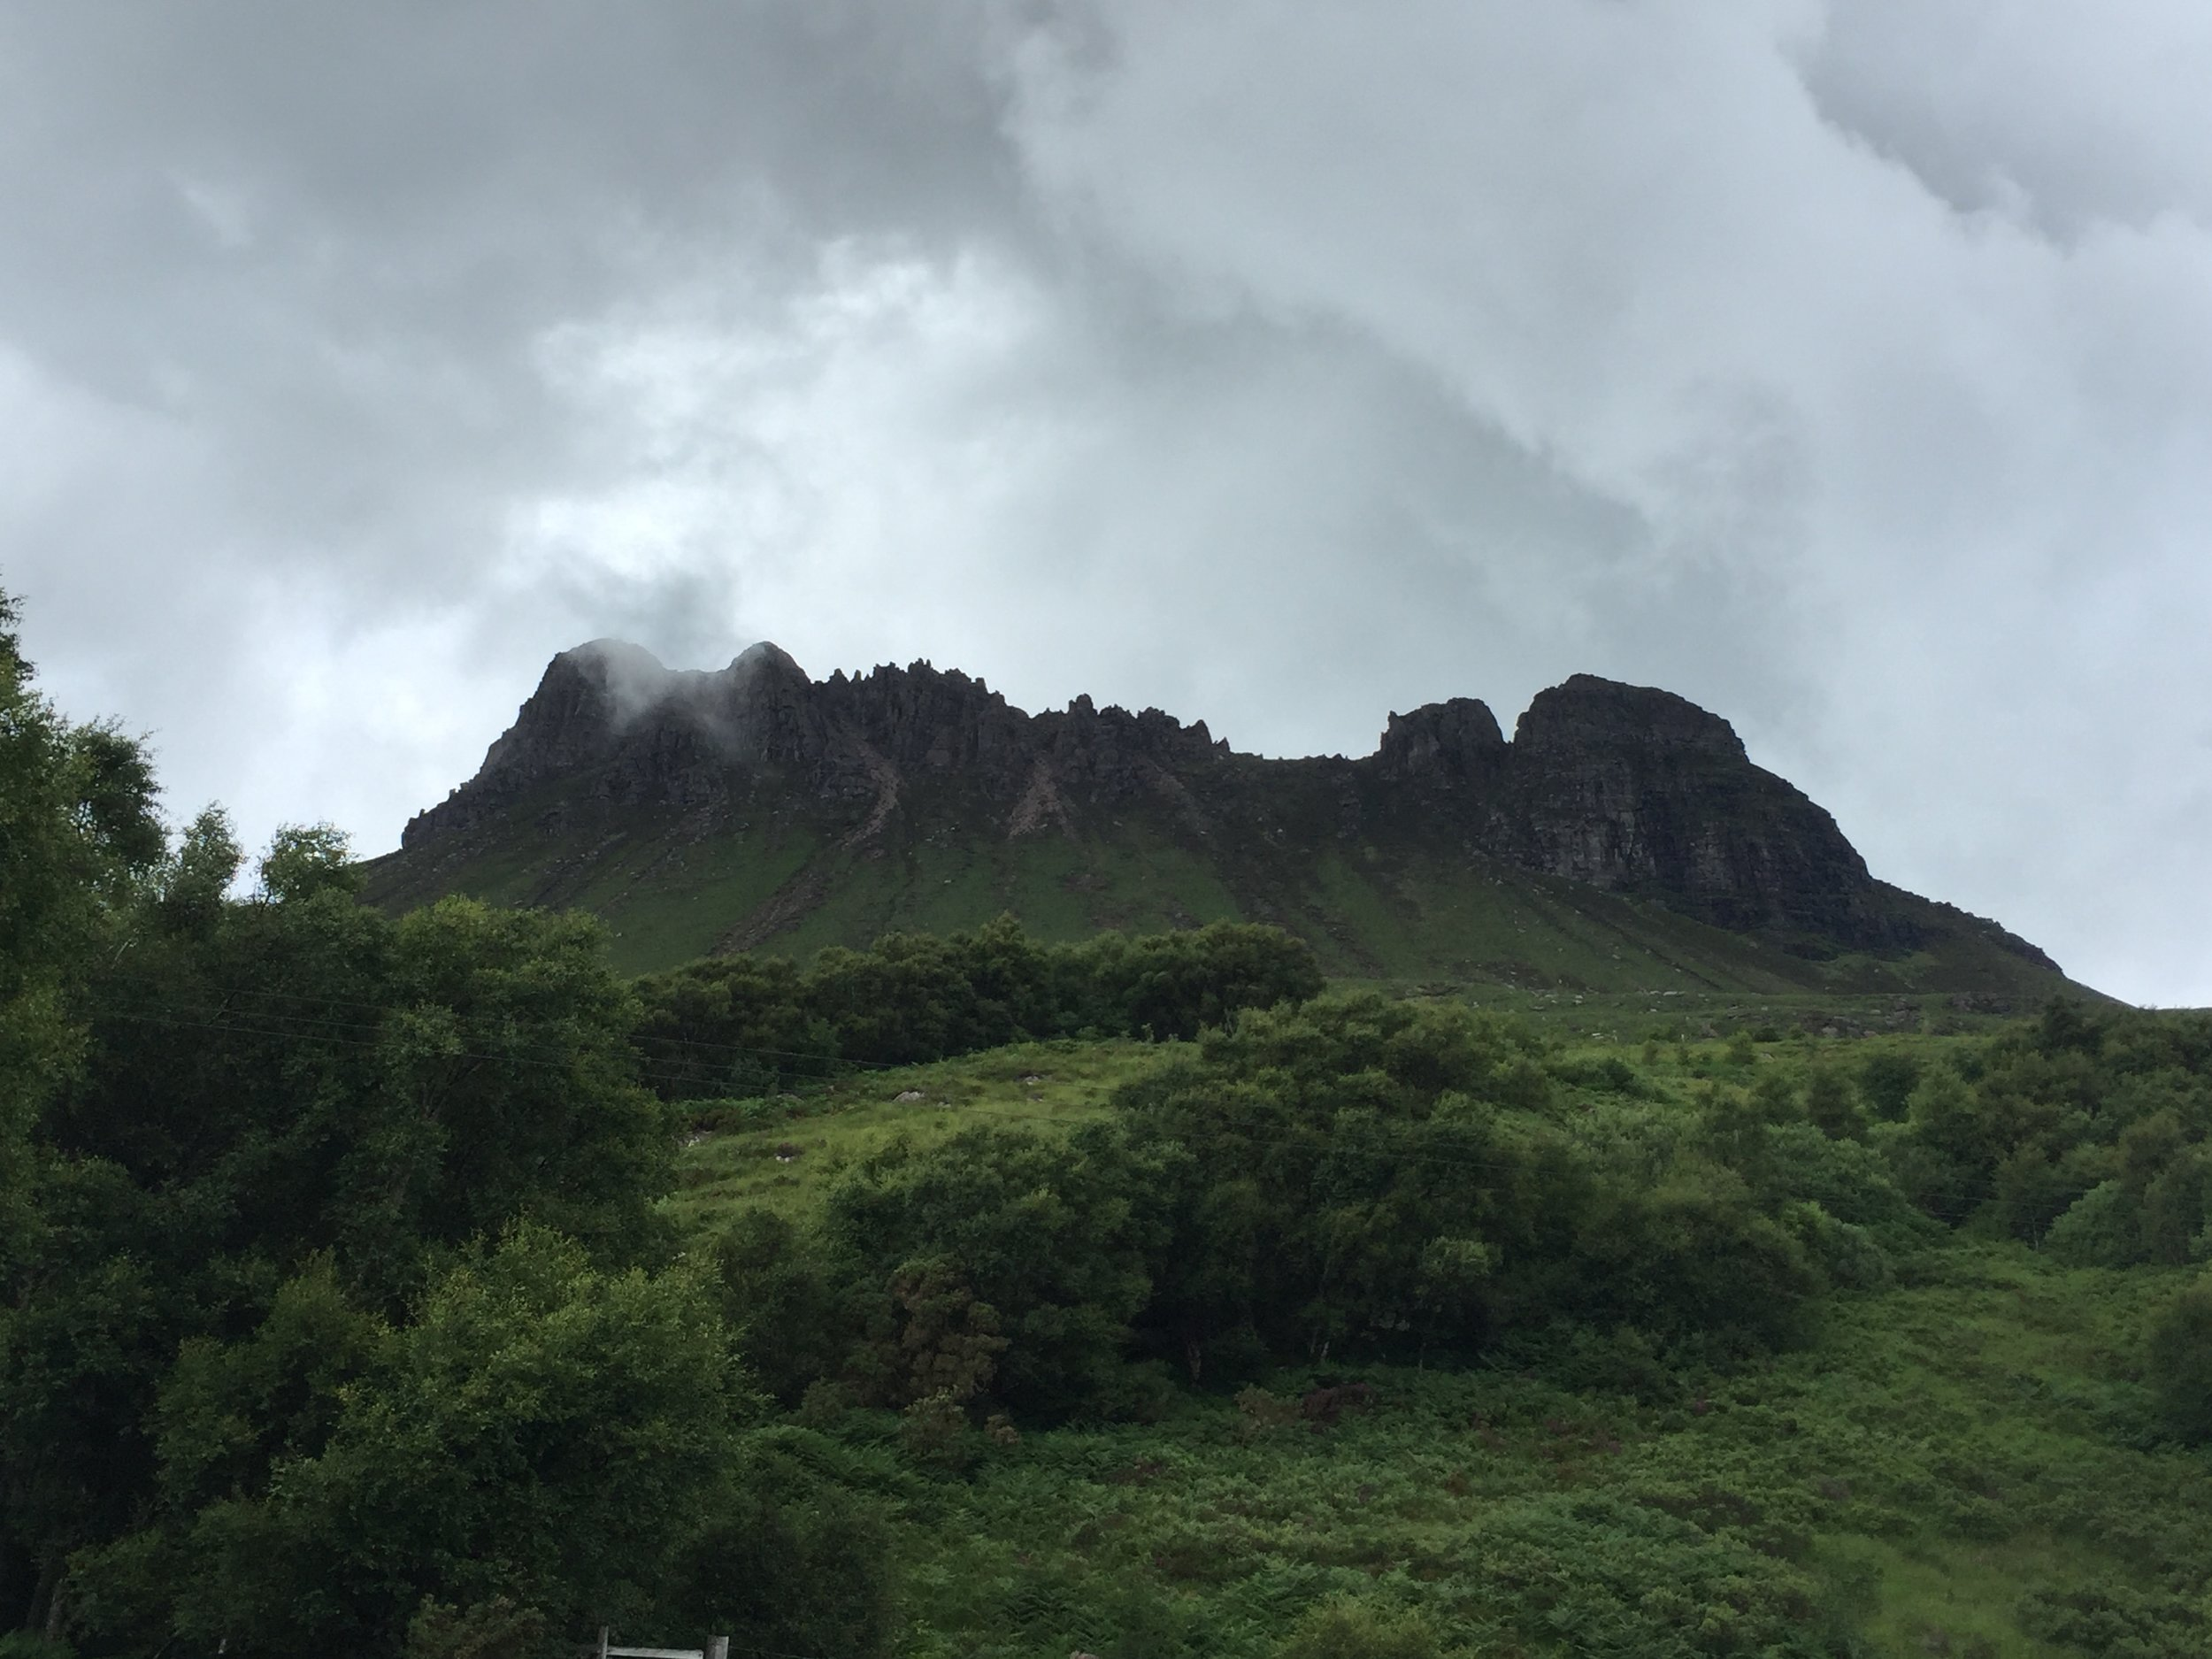 Stac Pollaidh from the road